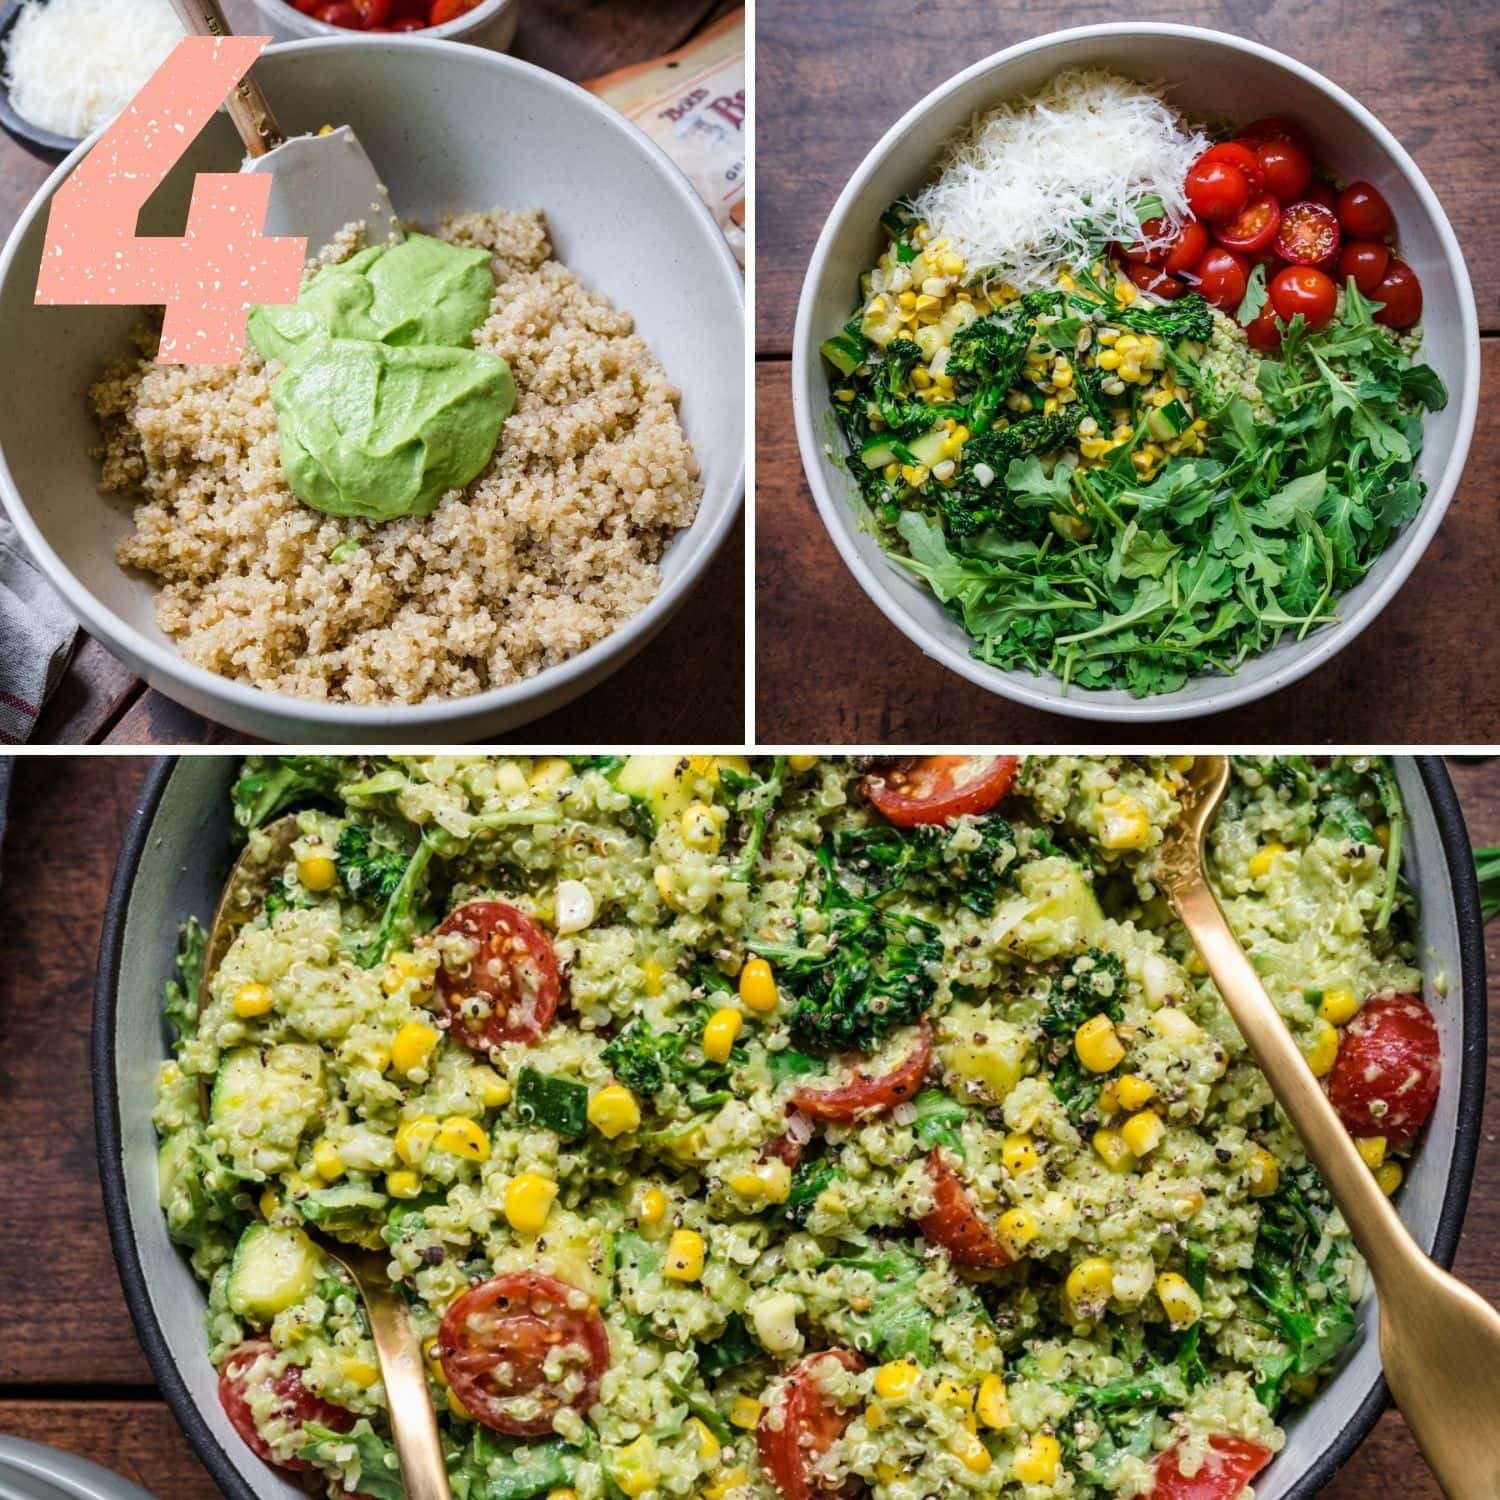 Final step with 3 pictures in one. Stir dressing into quinoa, add the rest of the ingredients to the bowl, then toss.